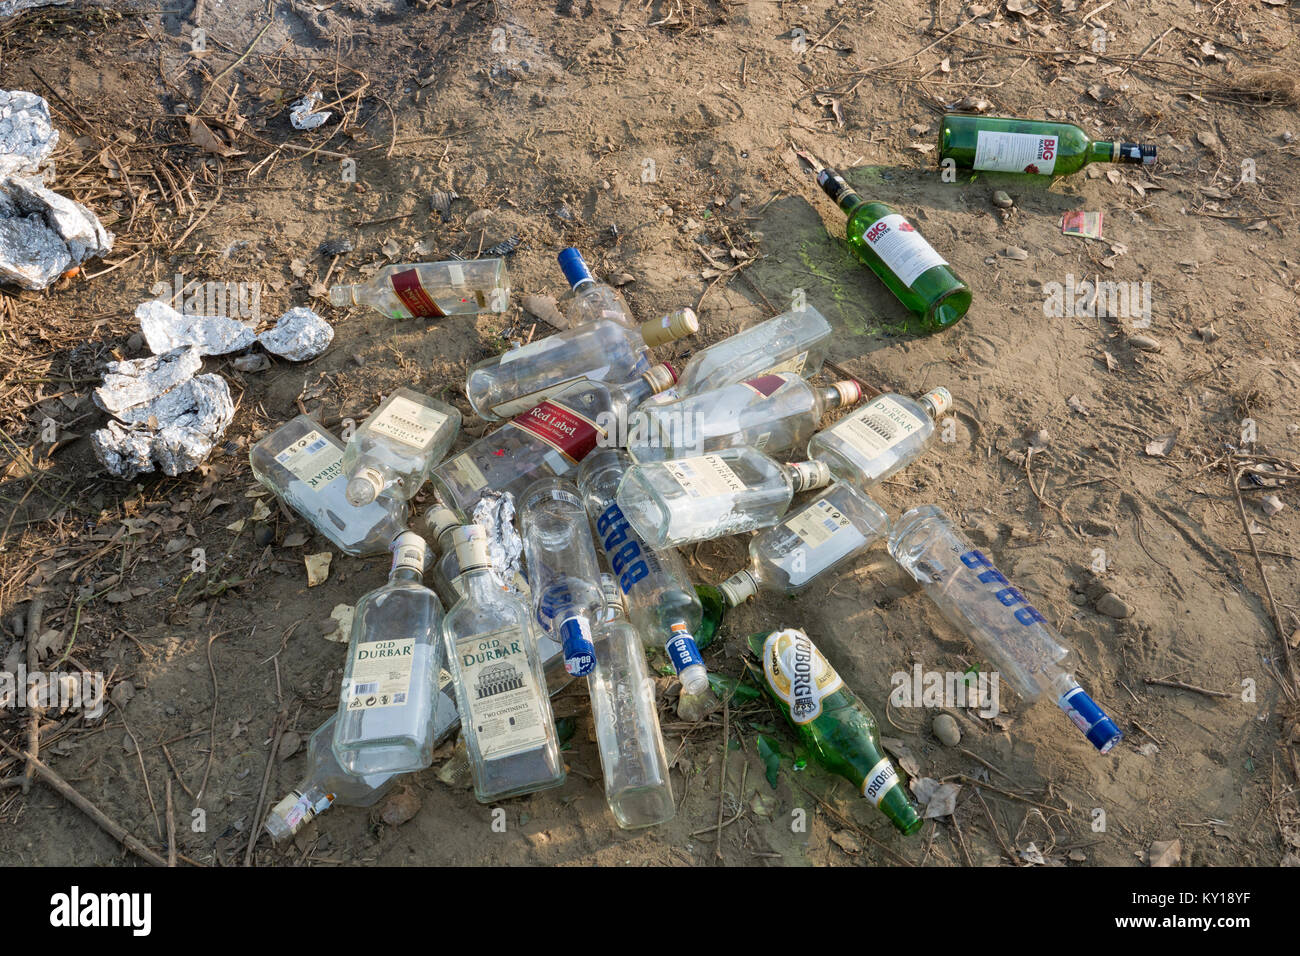 Discarded empty alcohol spirits bottles and other trash left in park - Stock Image